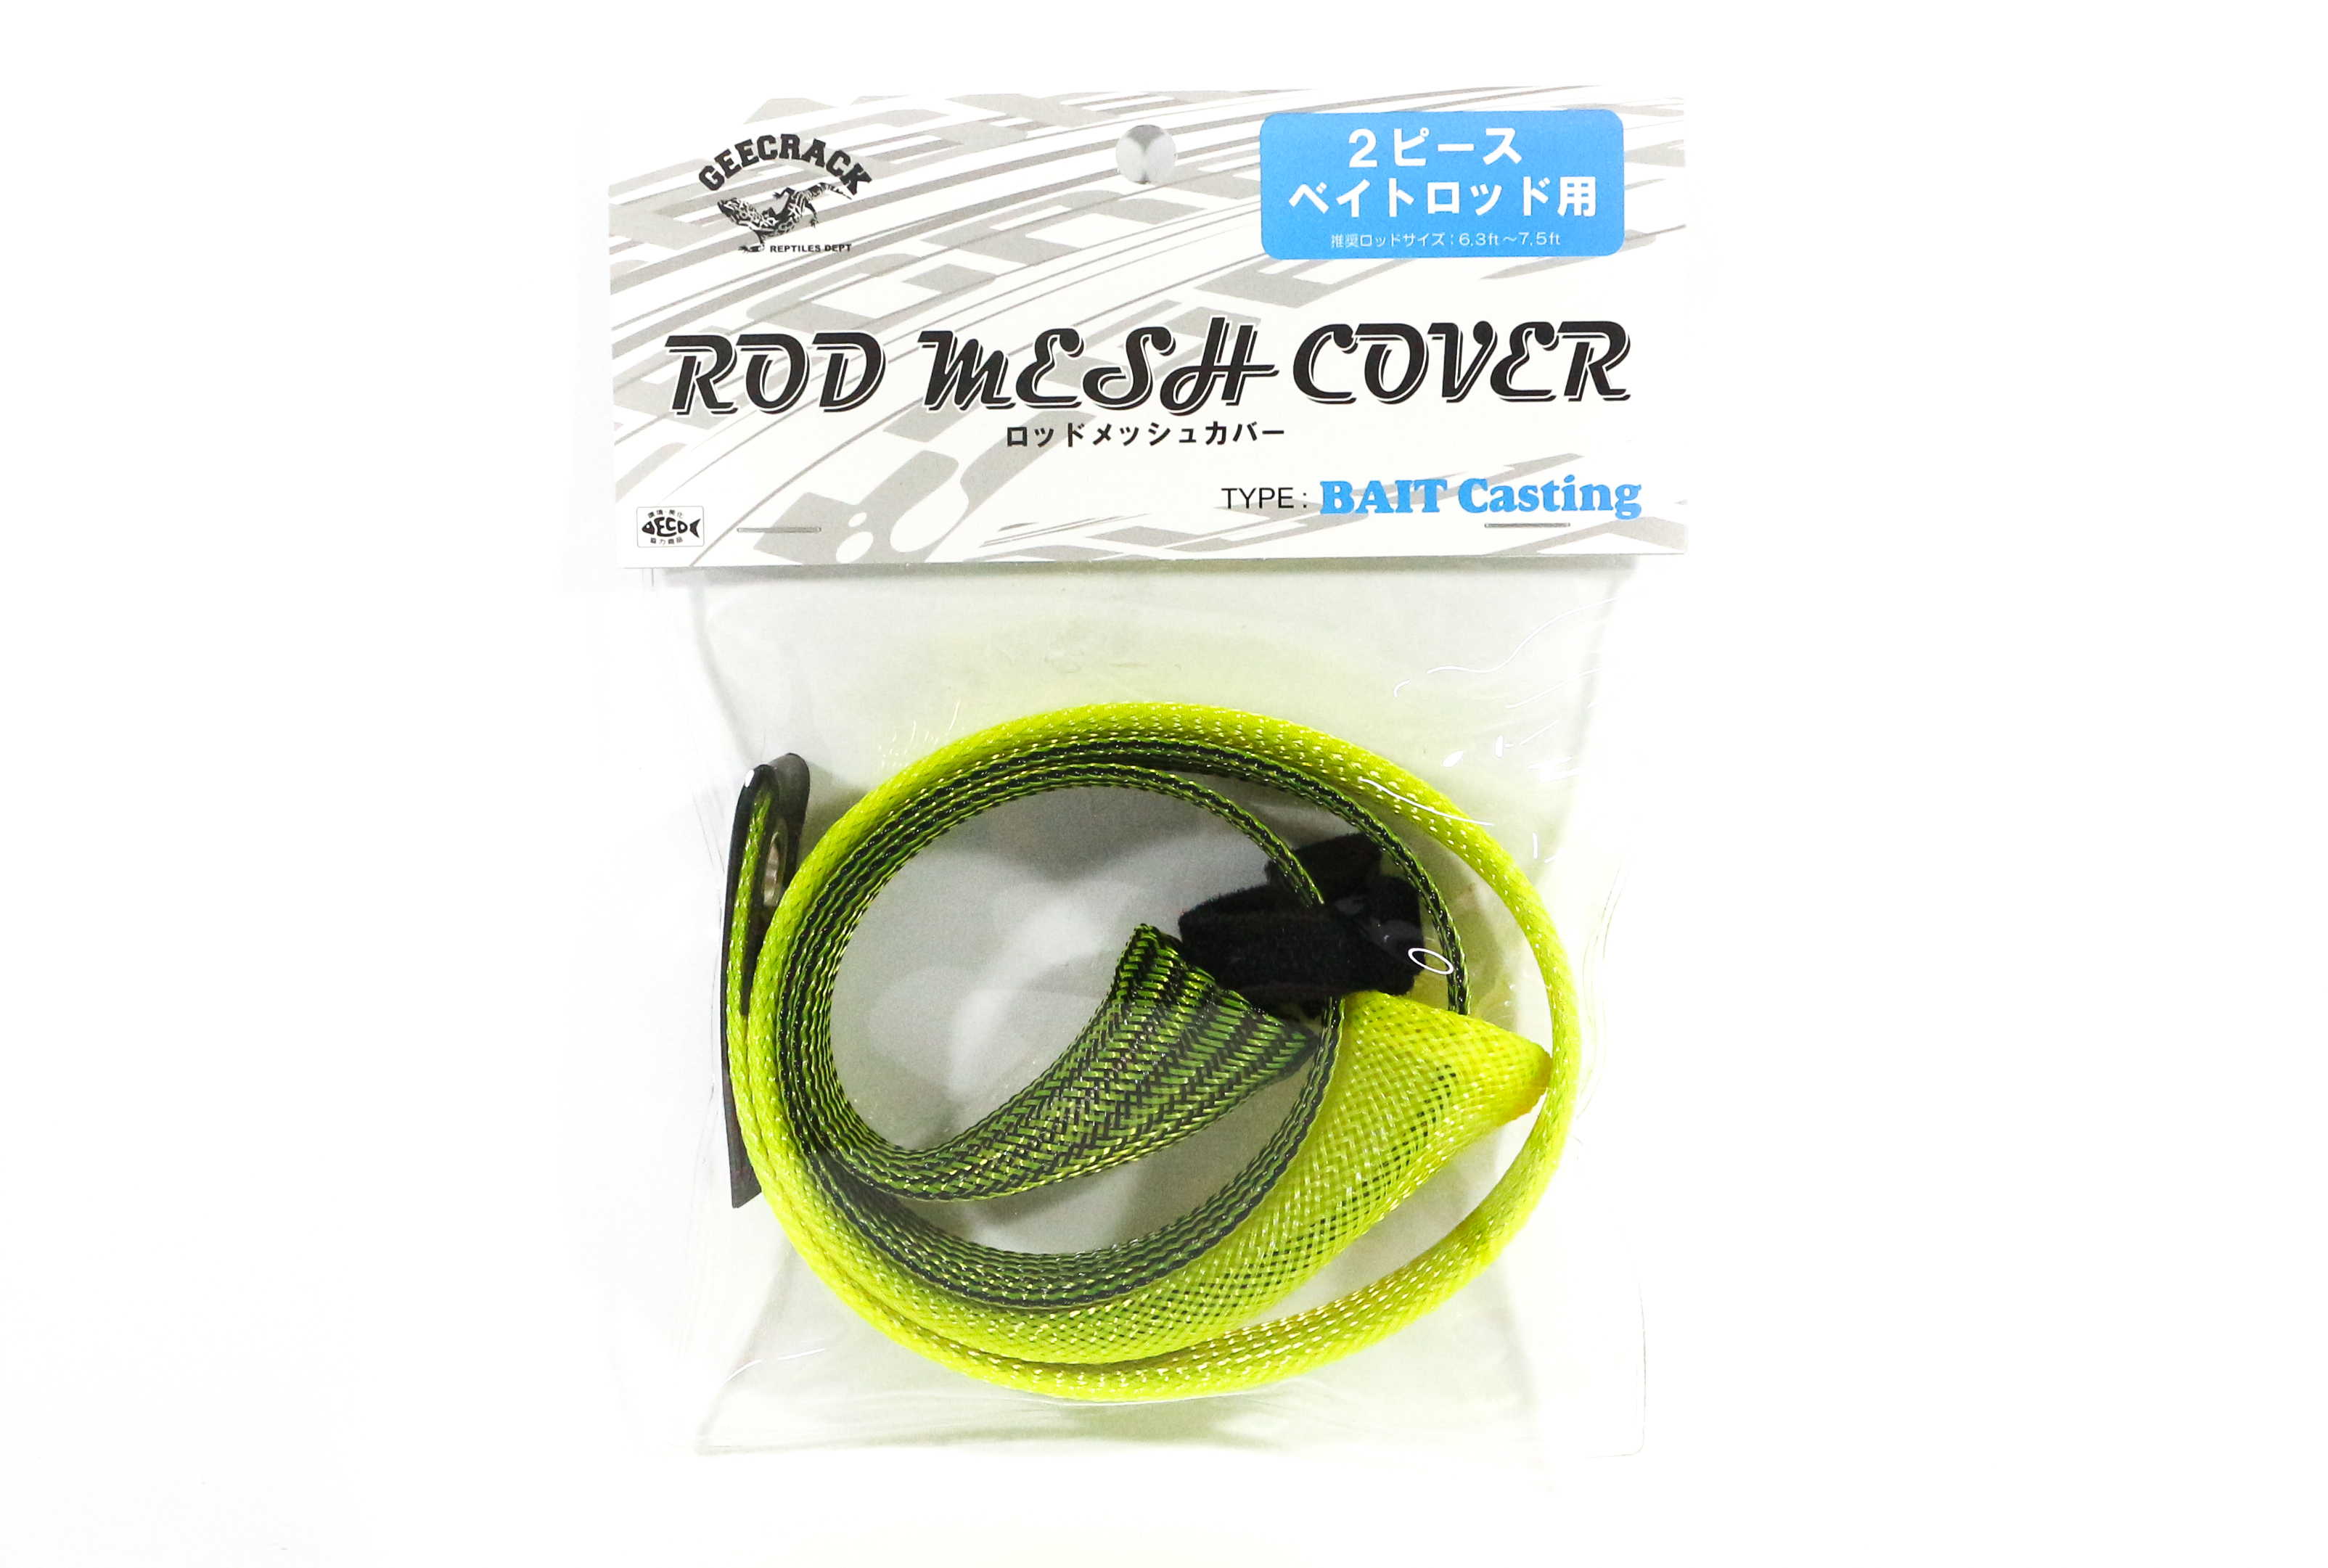 Sale Gee Crack GEE 7172 Rod Mesh Cover Baitcast 2 Piece 102 - 40 ,35 cm Y (5193)